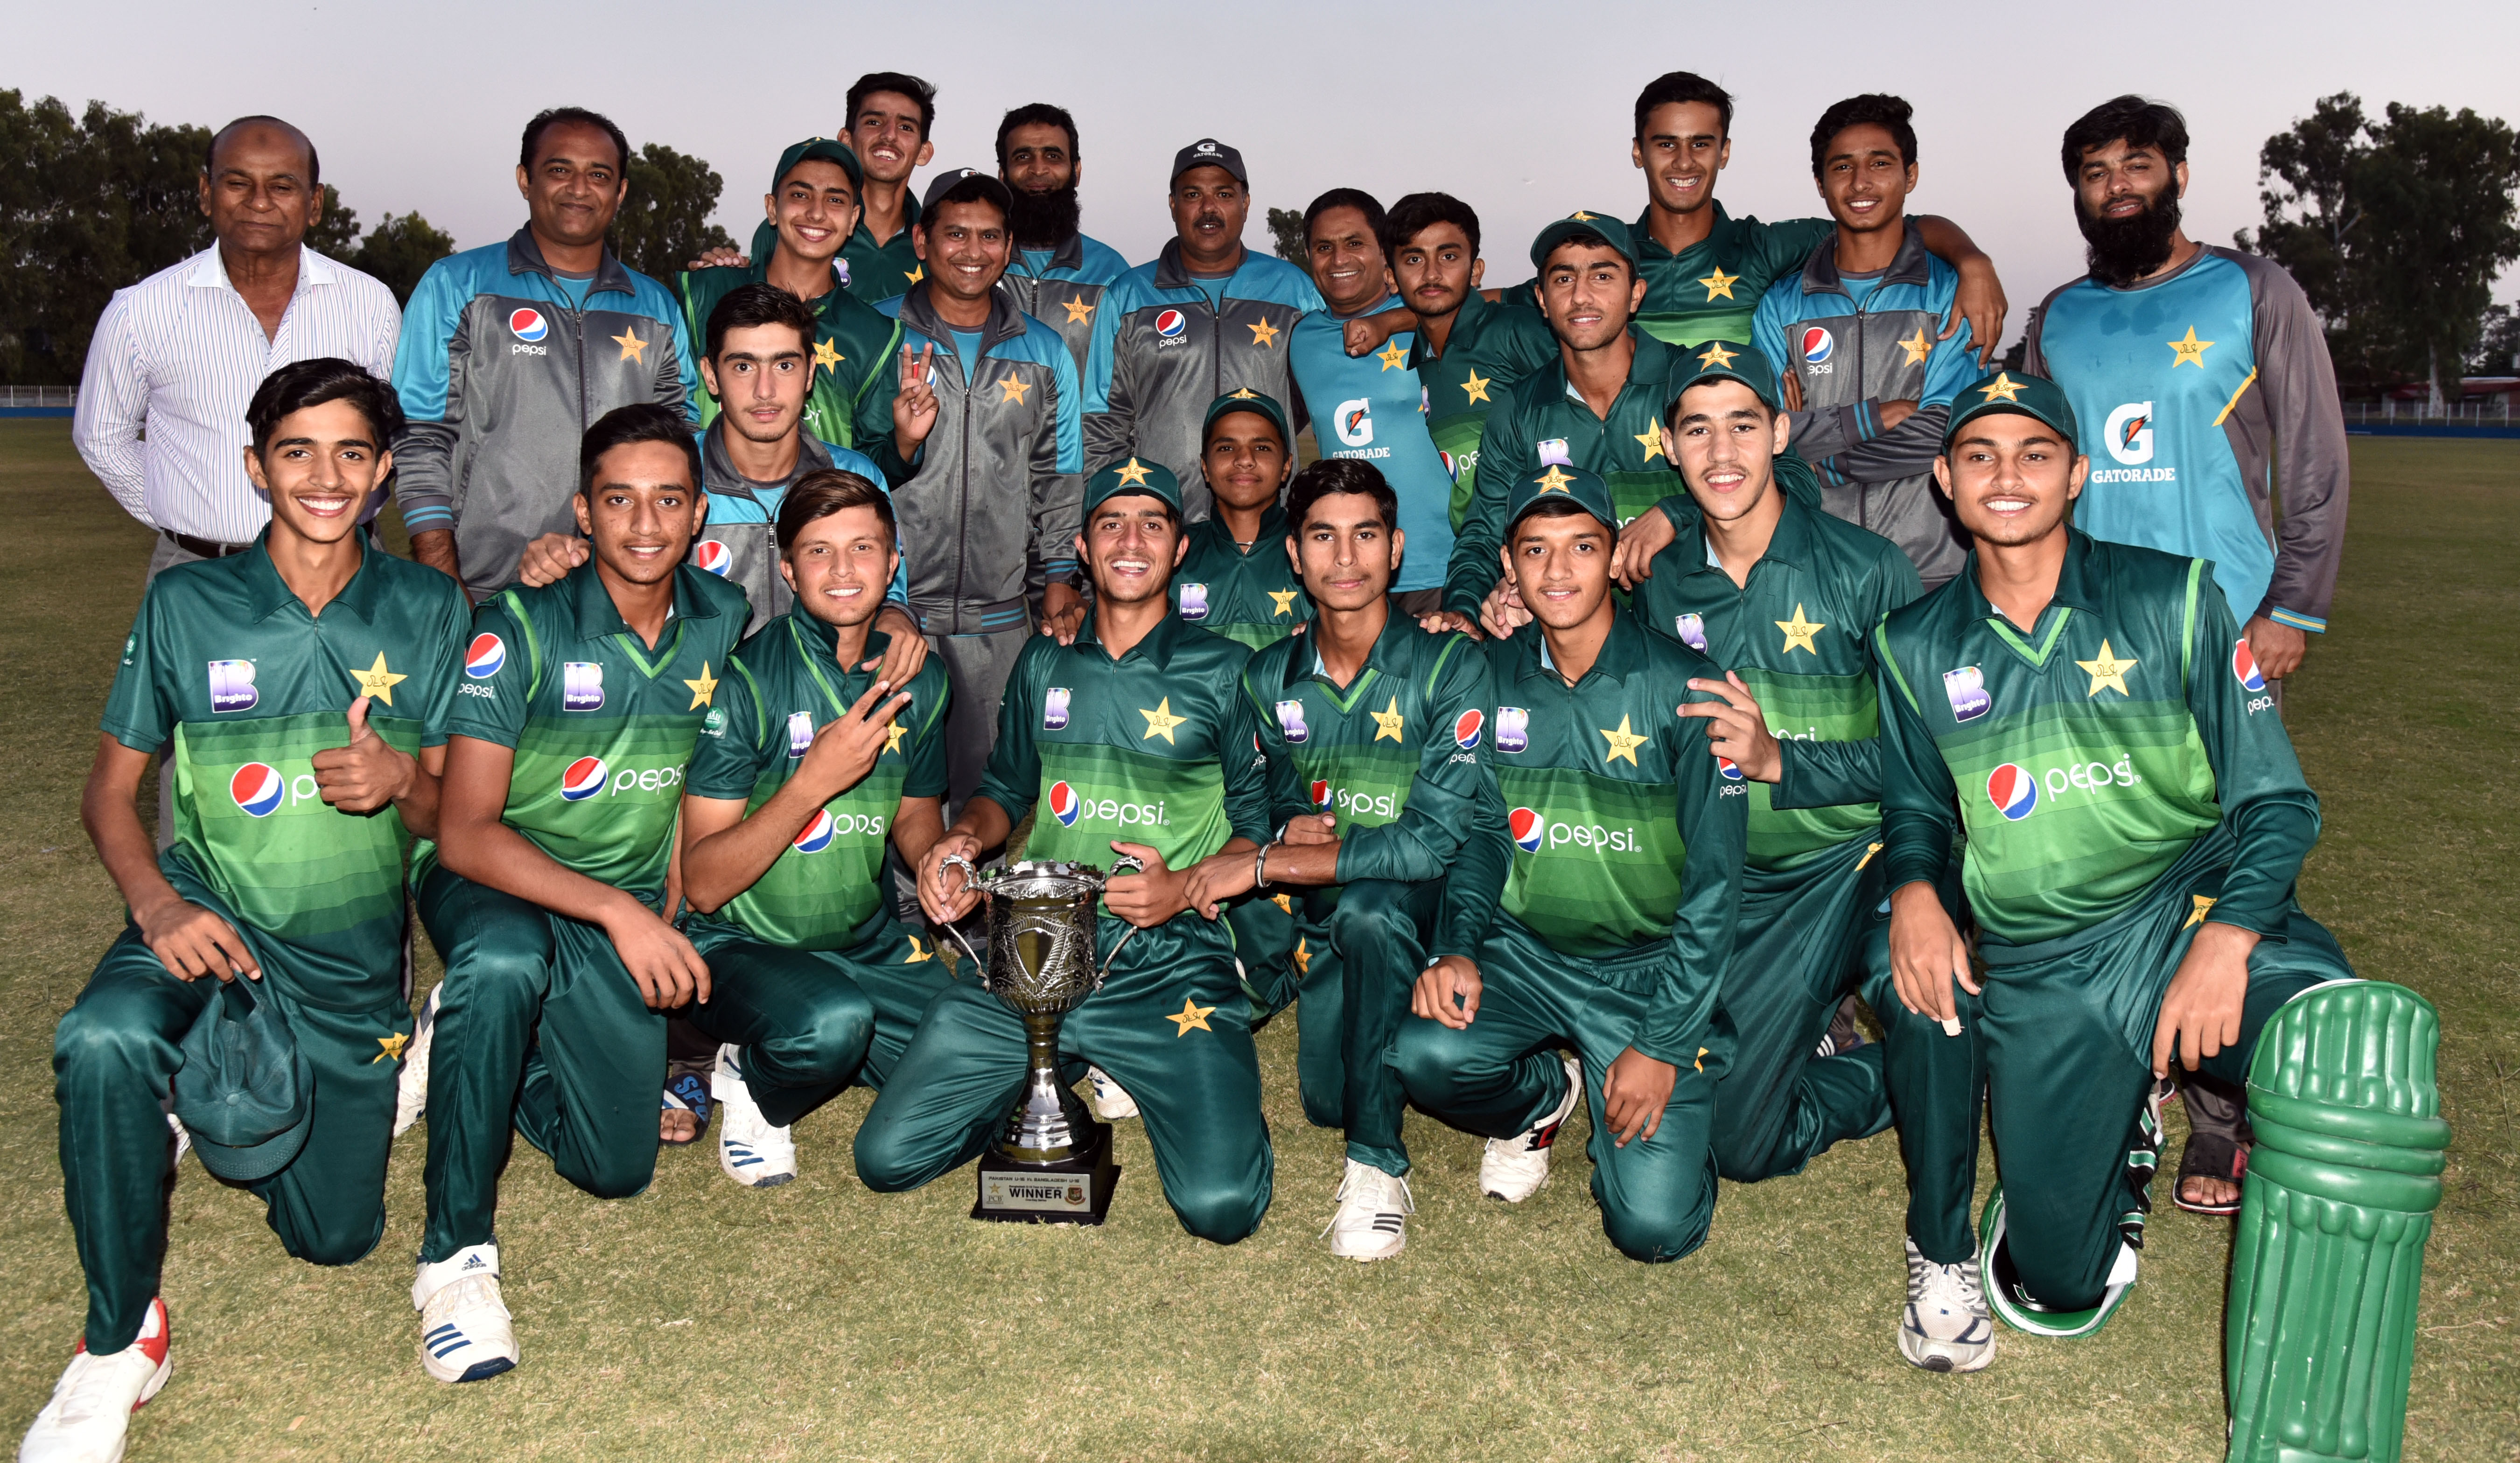 Pakistan U16s beat Bangladesh U16s by seven runs (DLS) to win 50-over series by a 2-0 margin